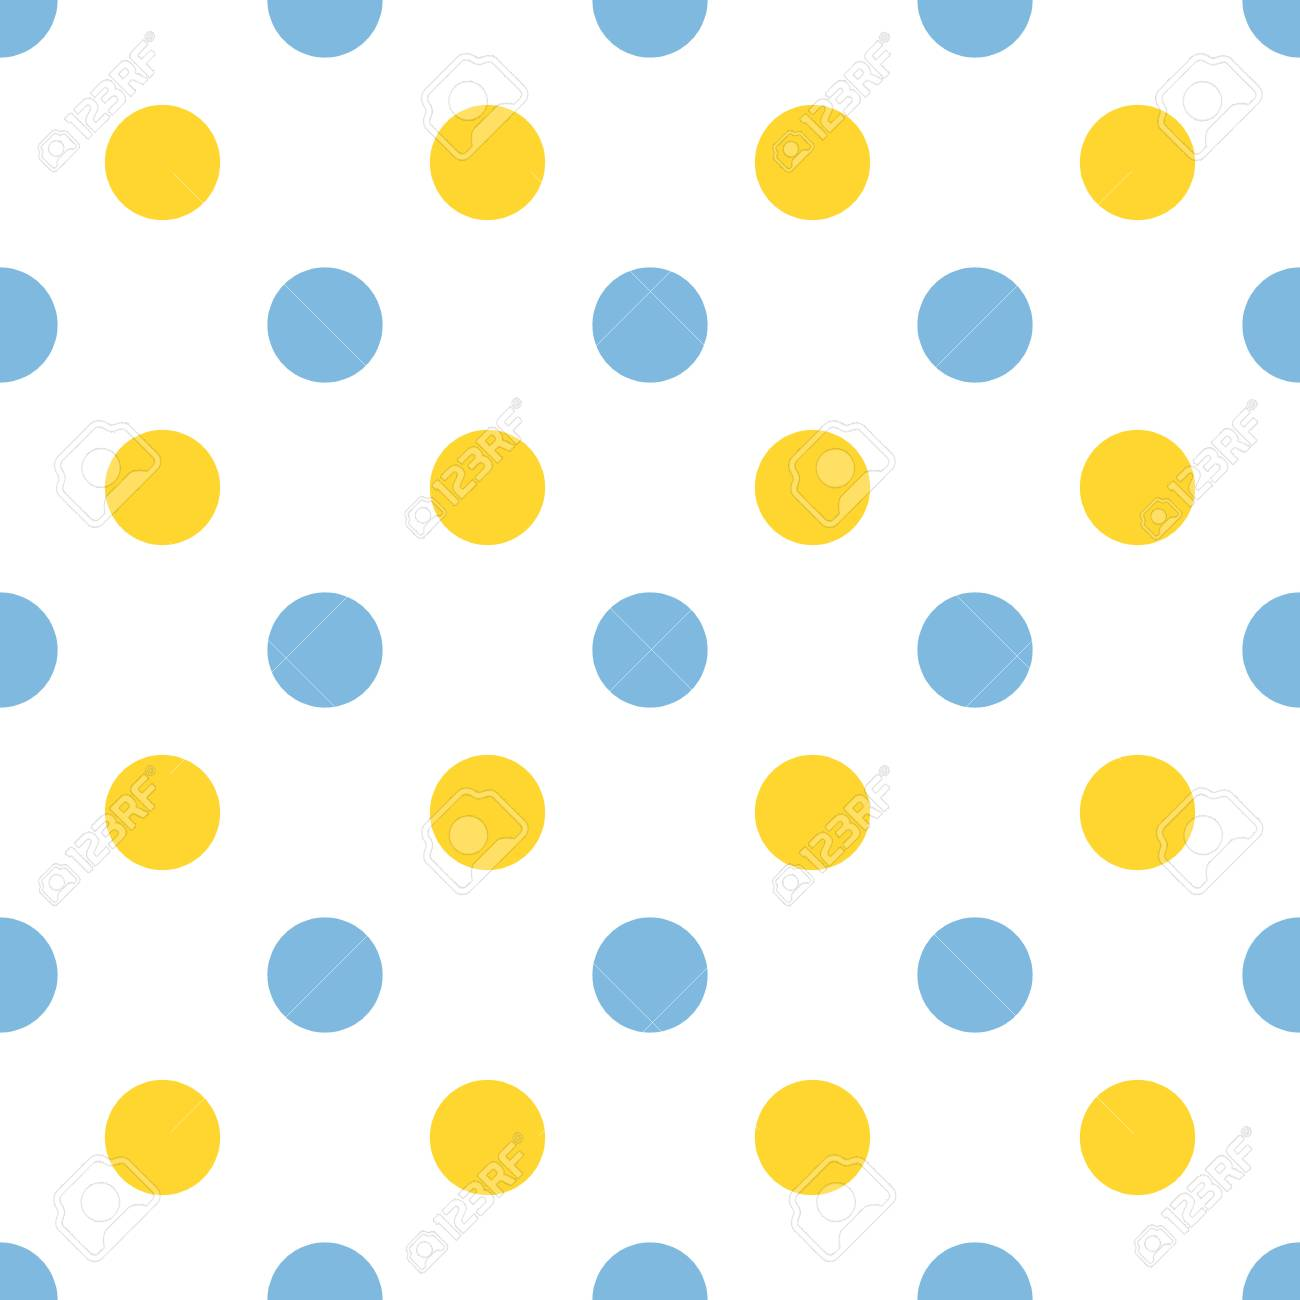 wallpapers Blue Yellow Polka Dots vector seamless pattern with blue and